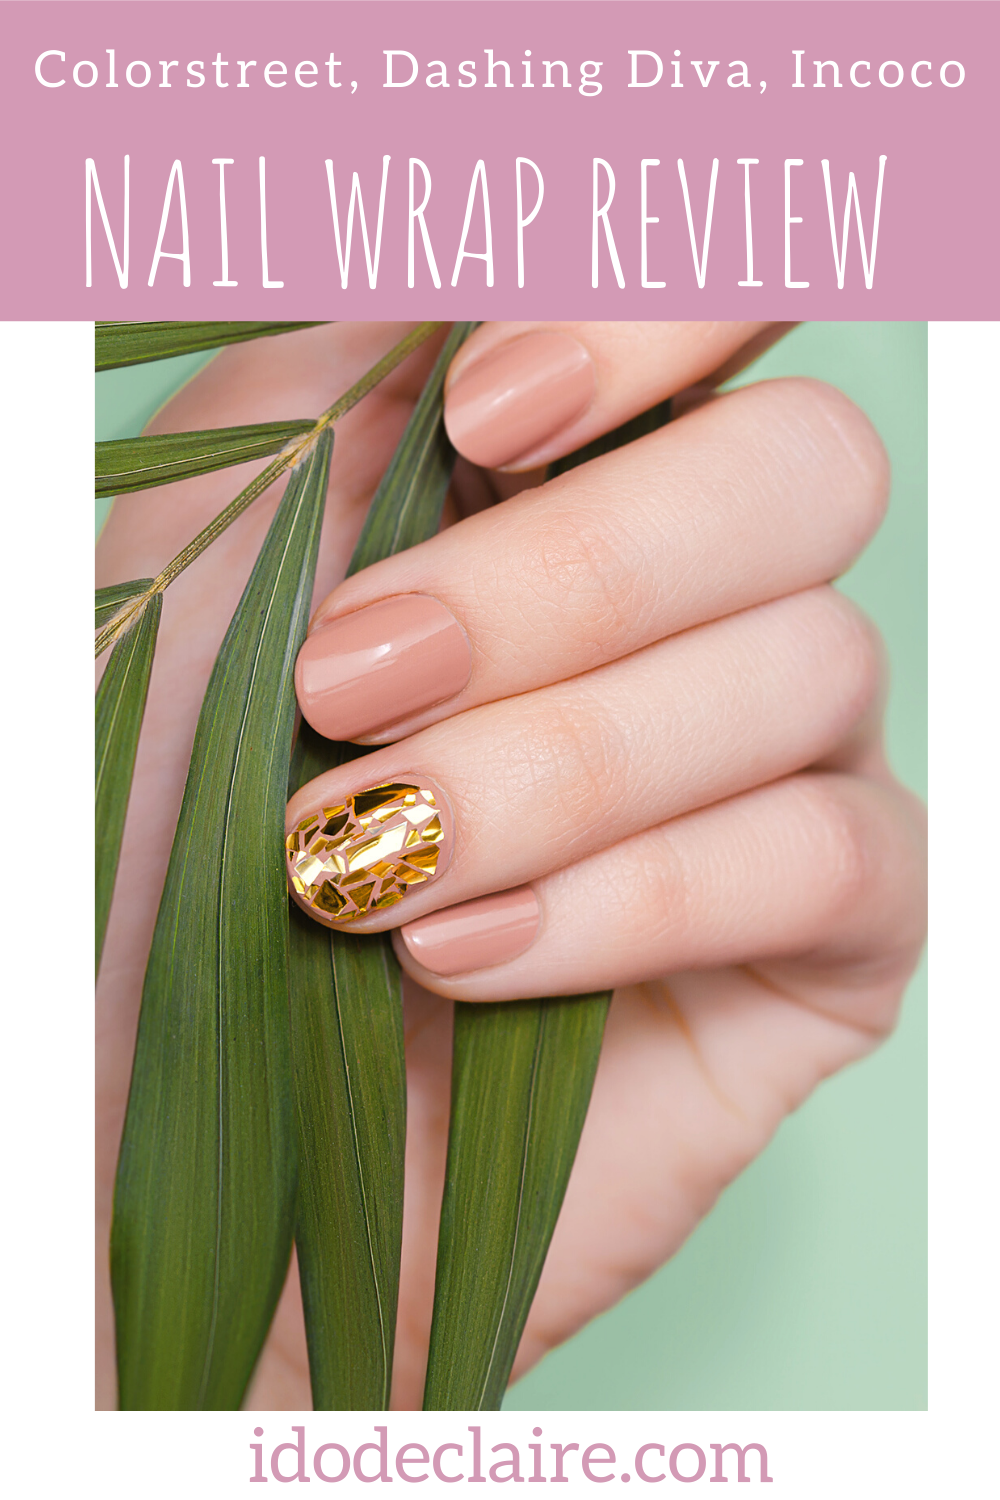 The Best Nail Wraps (Colorstreet, Dashing Diva, Incoco)